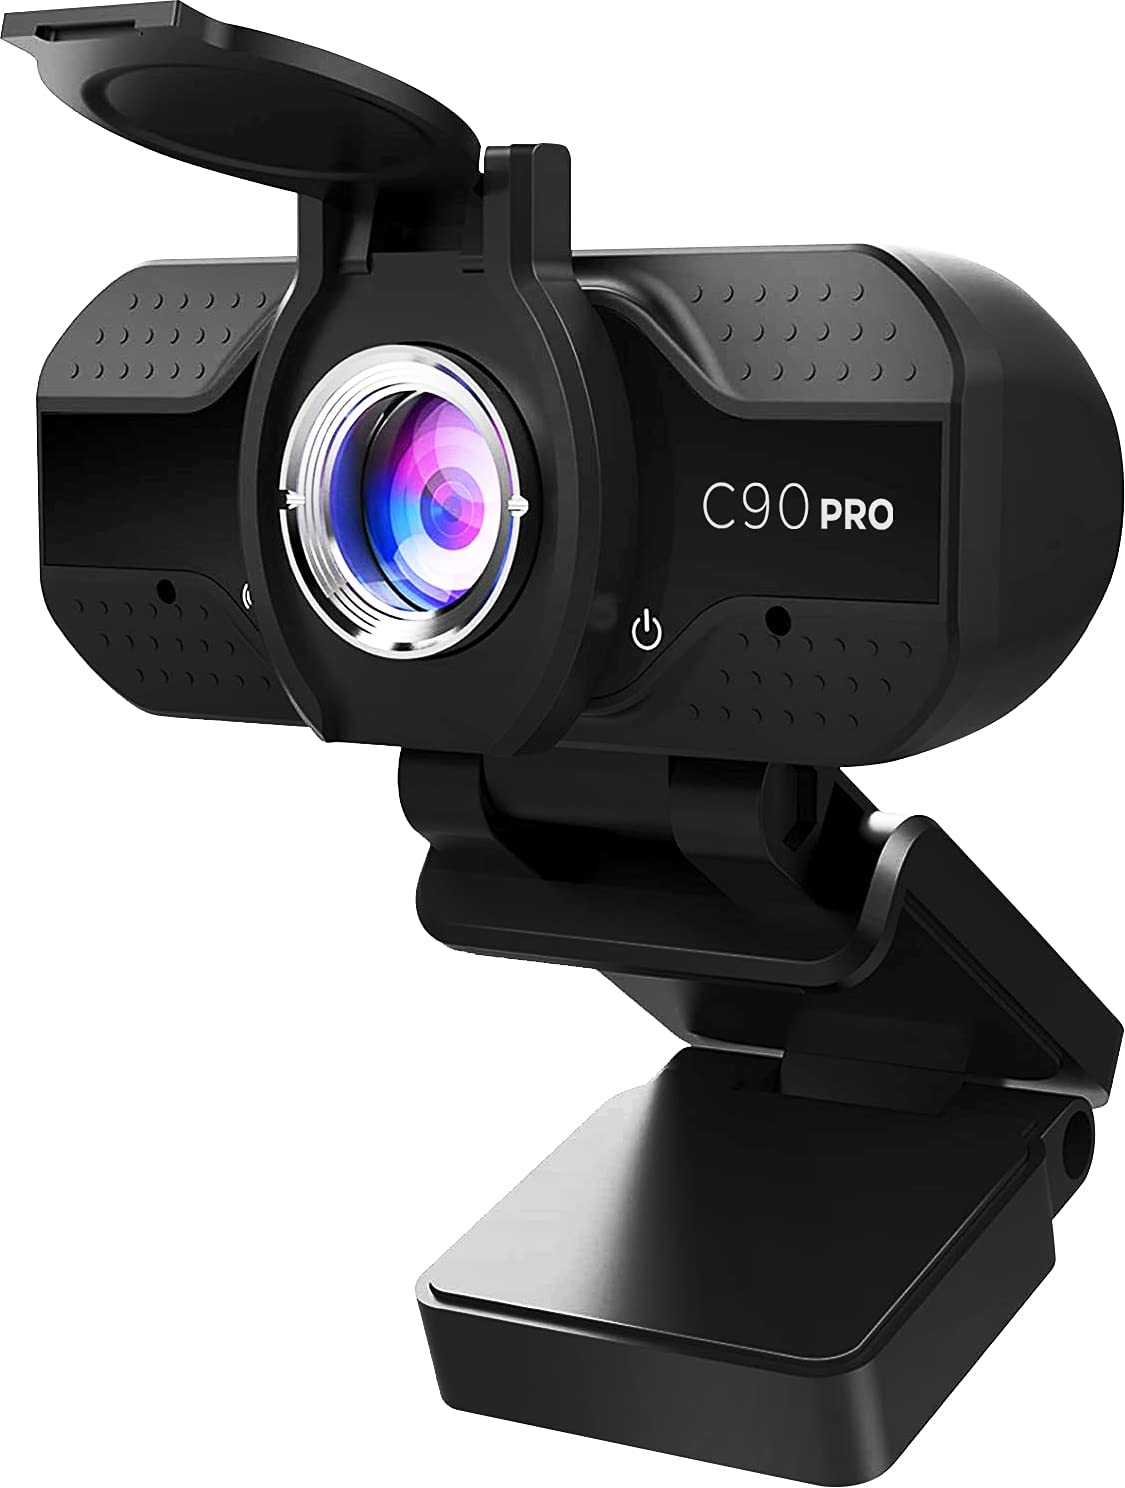 ATPro 1080p Webcam with Microphone for Desktop or Laptops, USB HD Plug and Play Computer Web Camera for Streaming, Gaming or Video Conferences, Built-in Noise Canceling Mic for PC, Mac or Windows